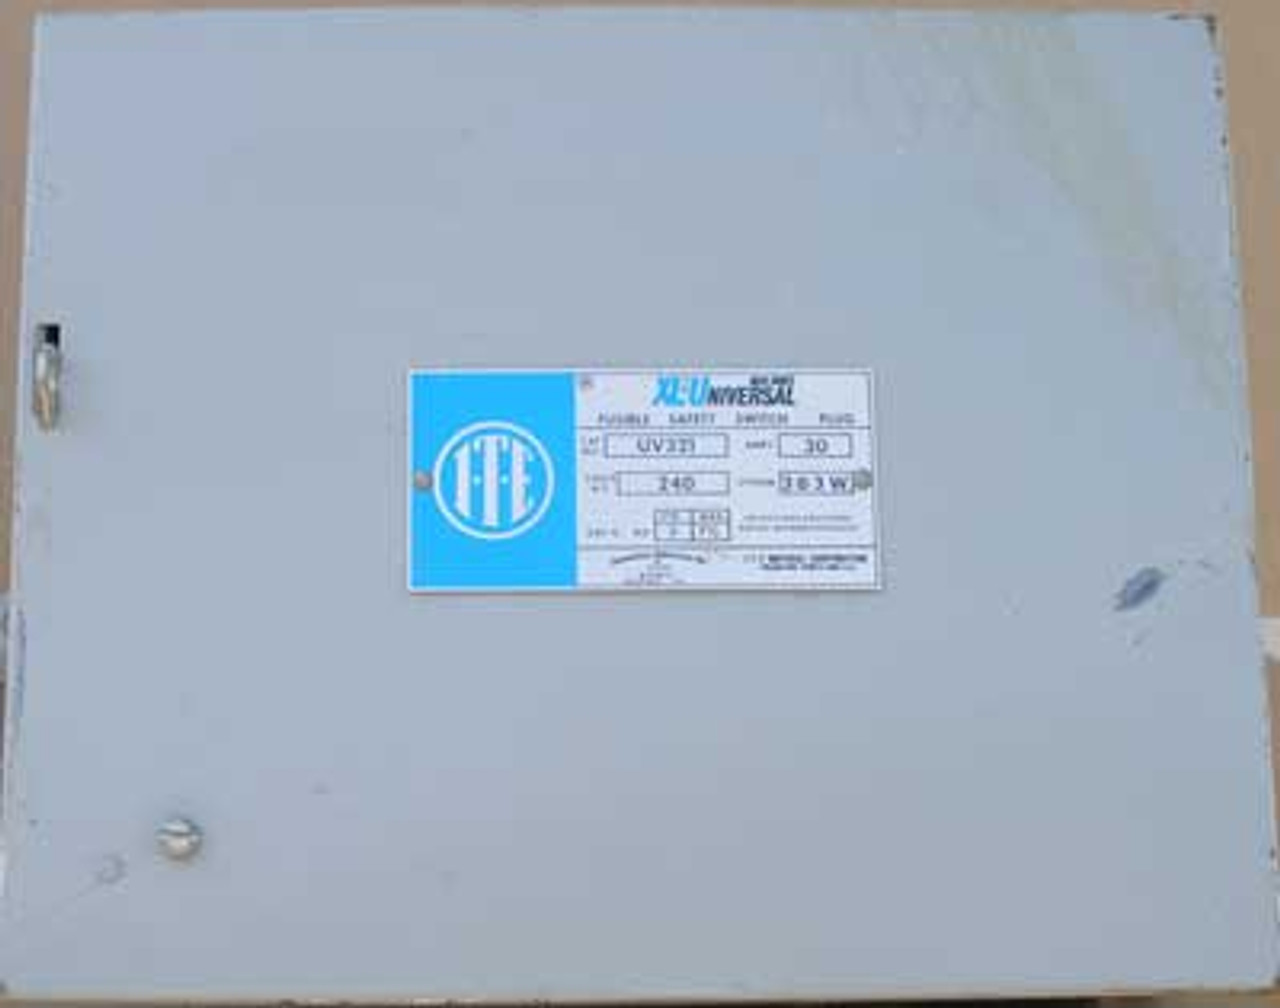 ITE Gould UV 321 Fusible Busduct Switch 30A 240V 3P 3W - Used